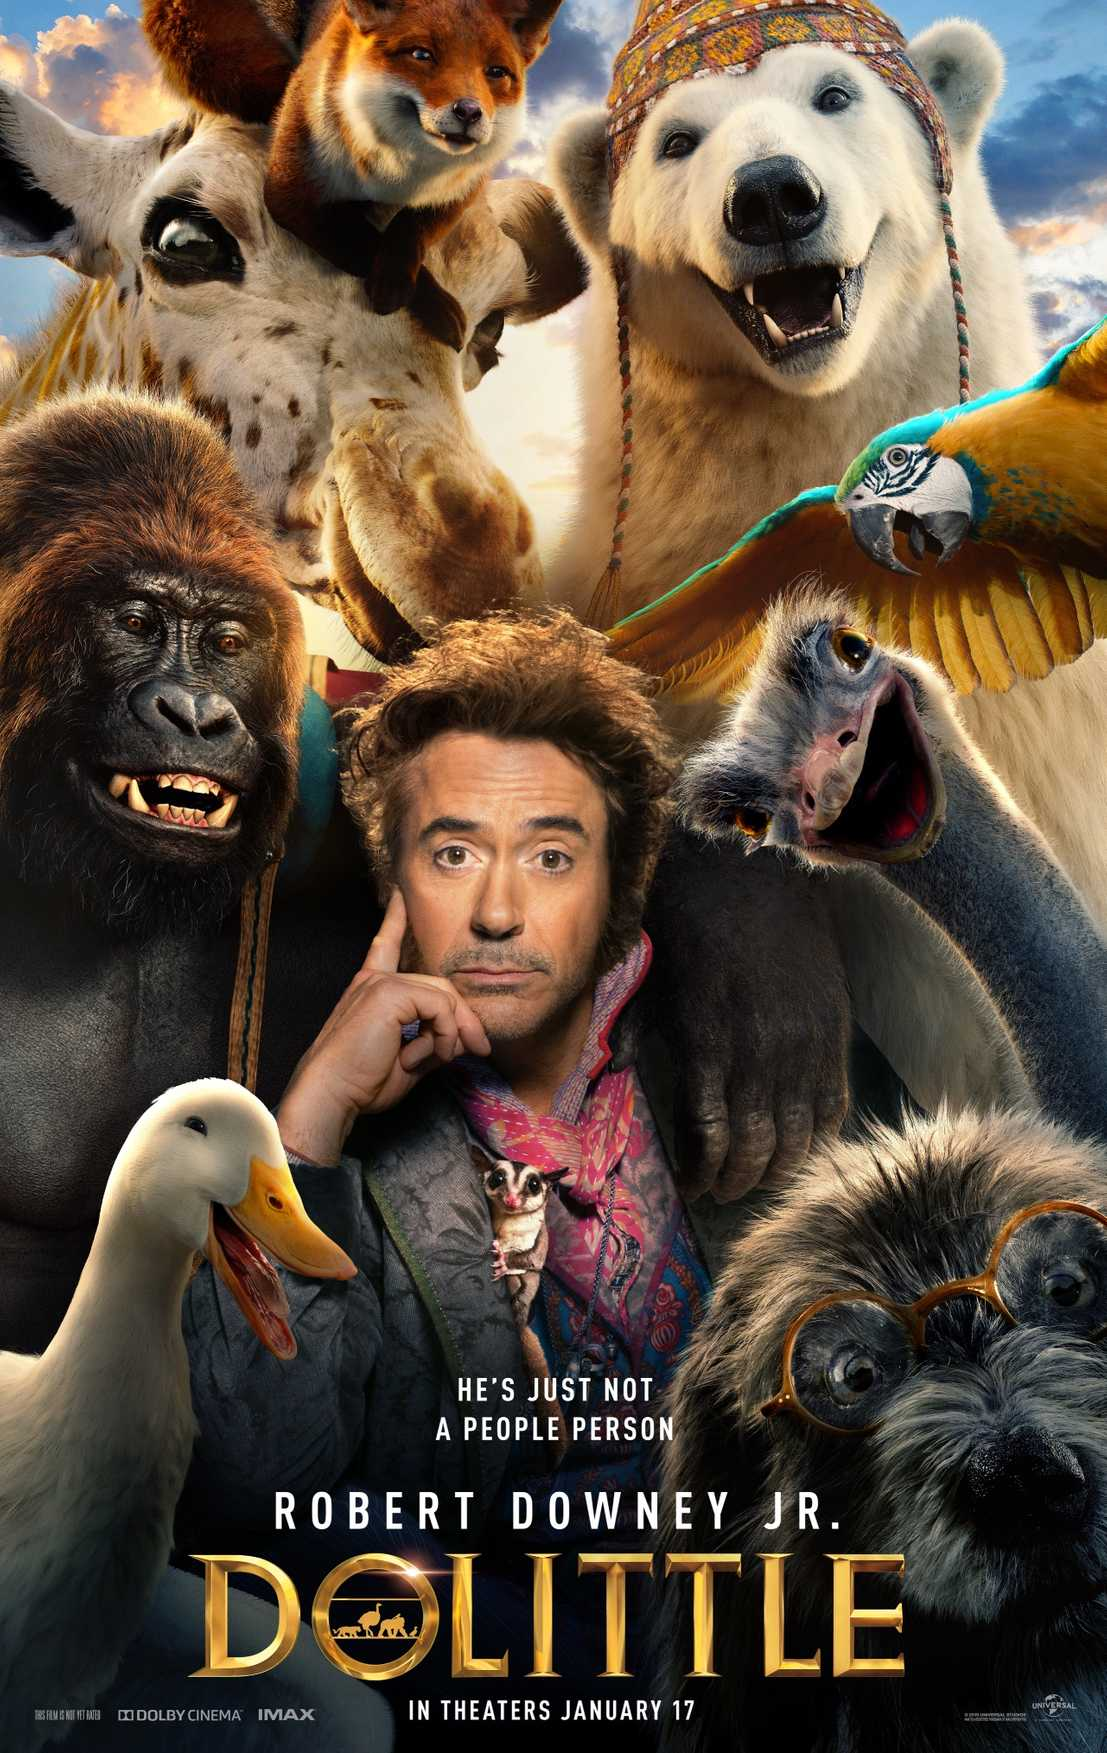 Downey Jr., Dolittle